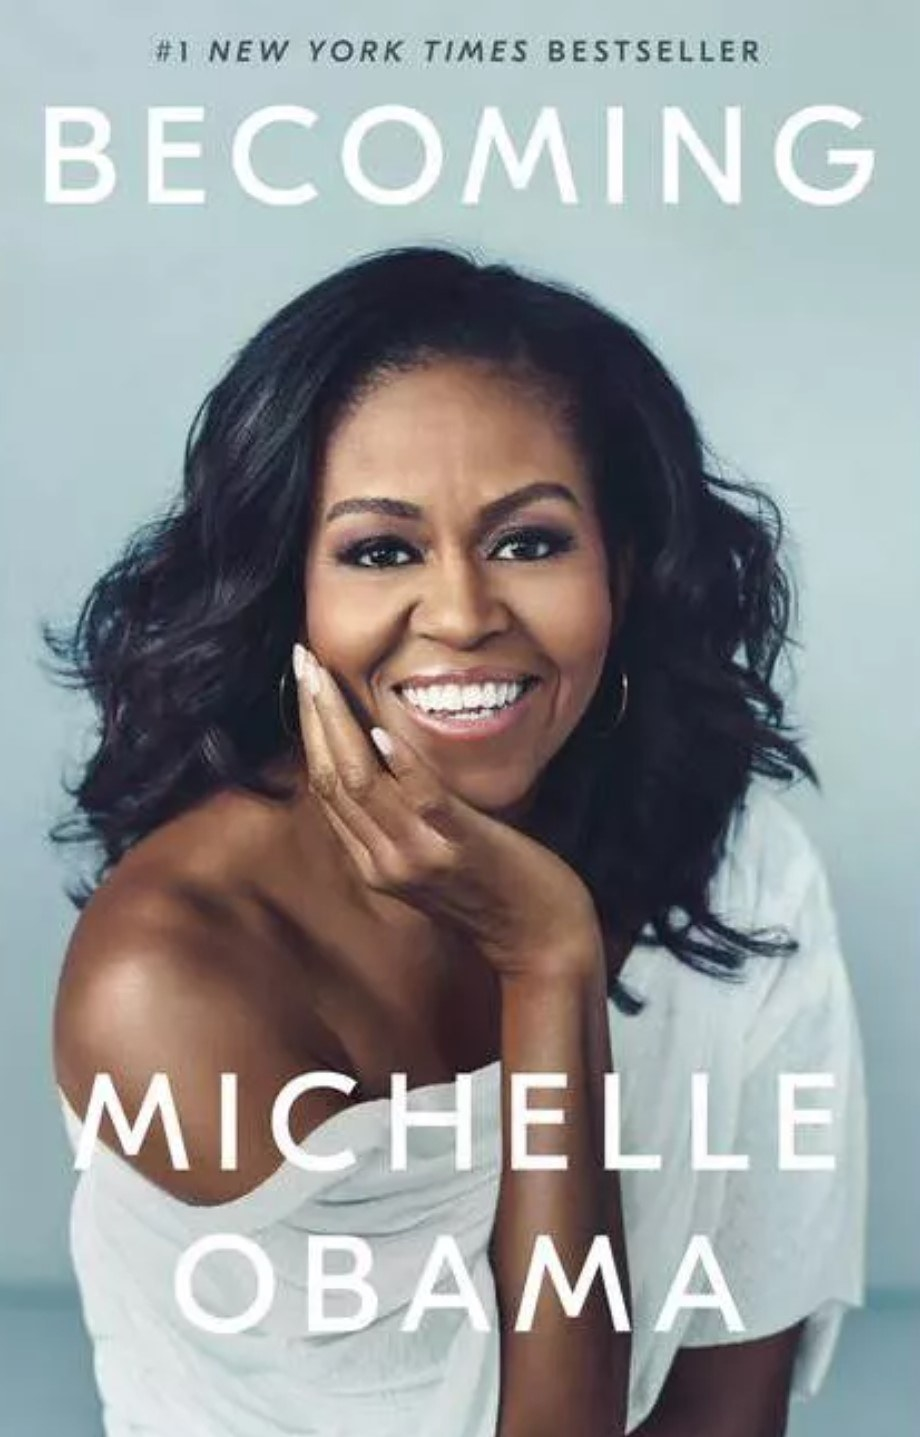 The cover of Becoming by Michelle Obama